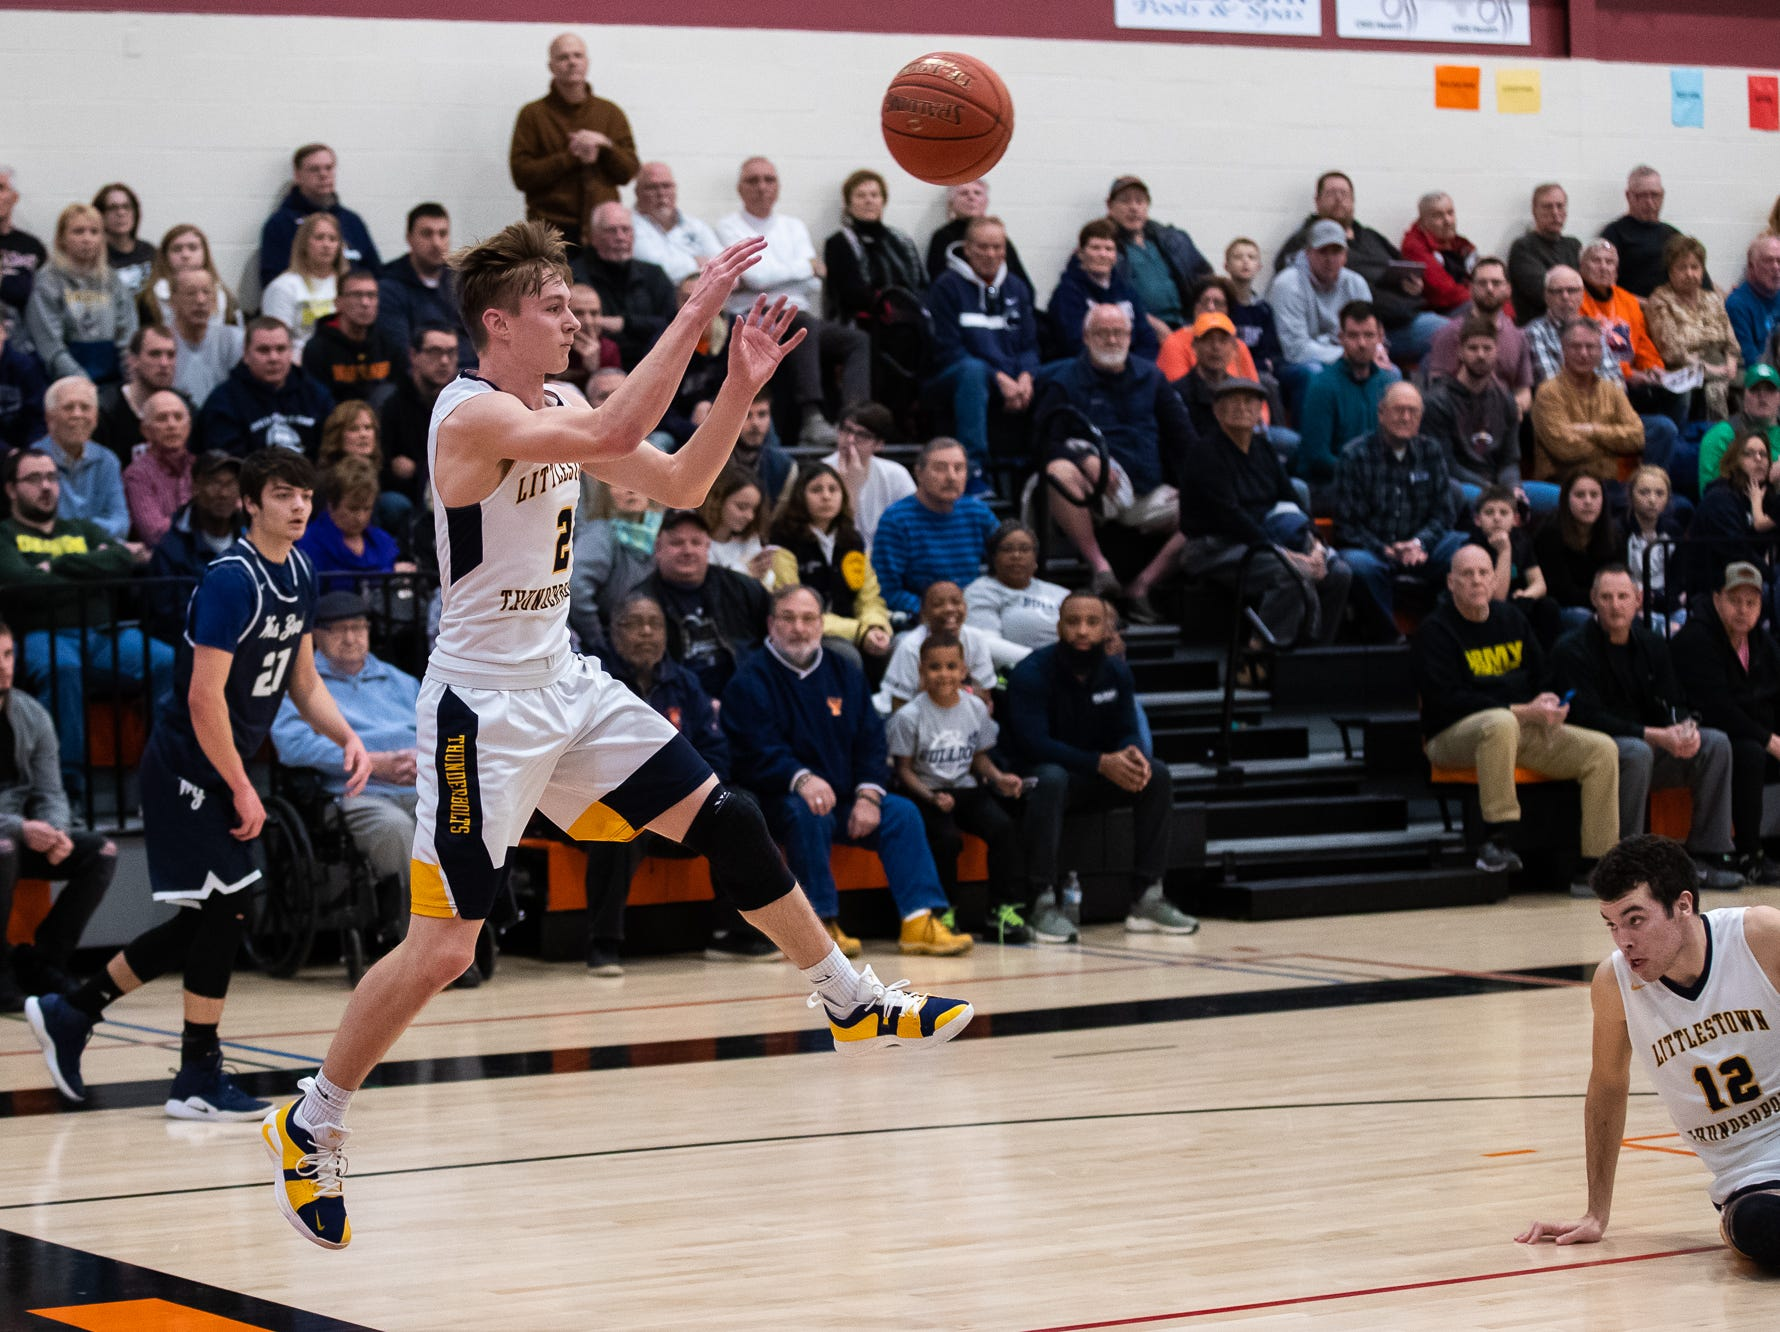 Littlestown's Jakob Lane (2) throws the ball back into play during the first half of the YAIAA boys' basketball quarterfinals between Littlestown and West York, Saturday, Feb. 9, 2019, at Central York High School. West York led Littlestown 33-31 at the half.